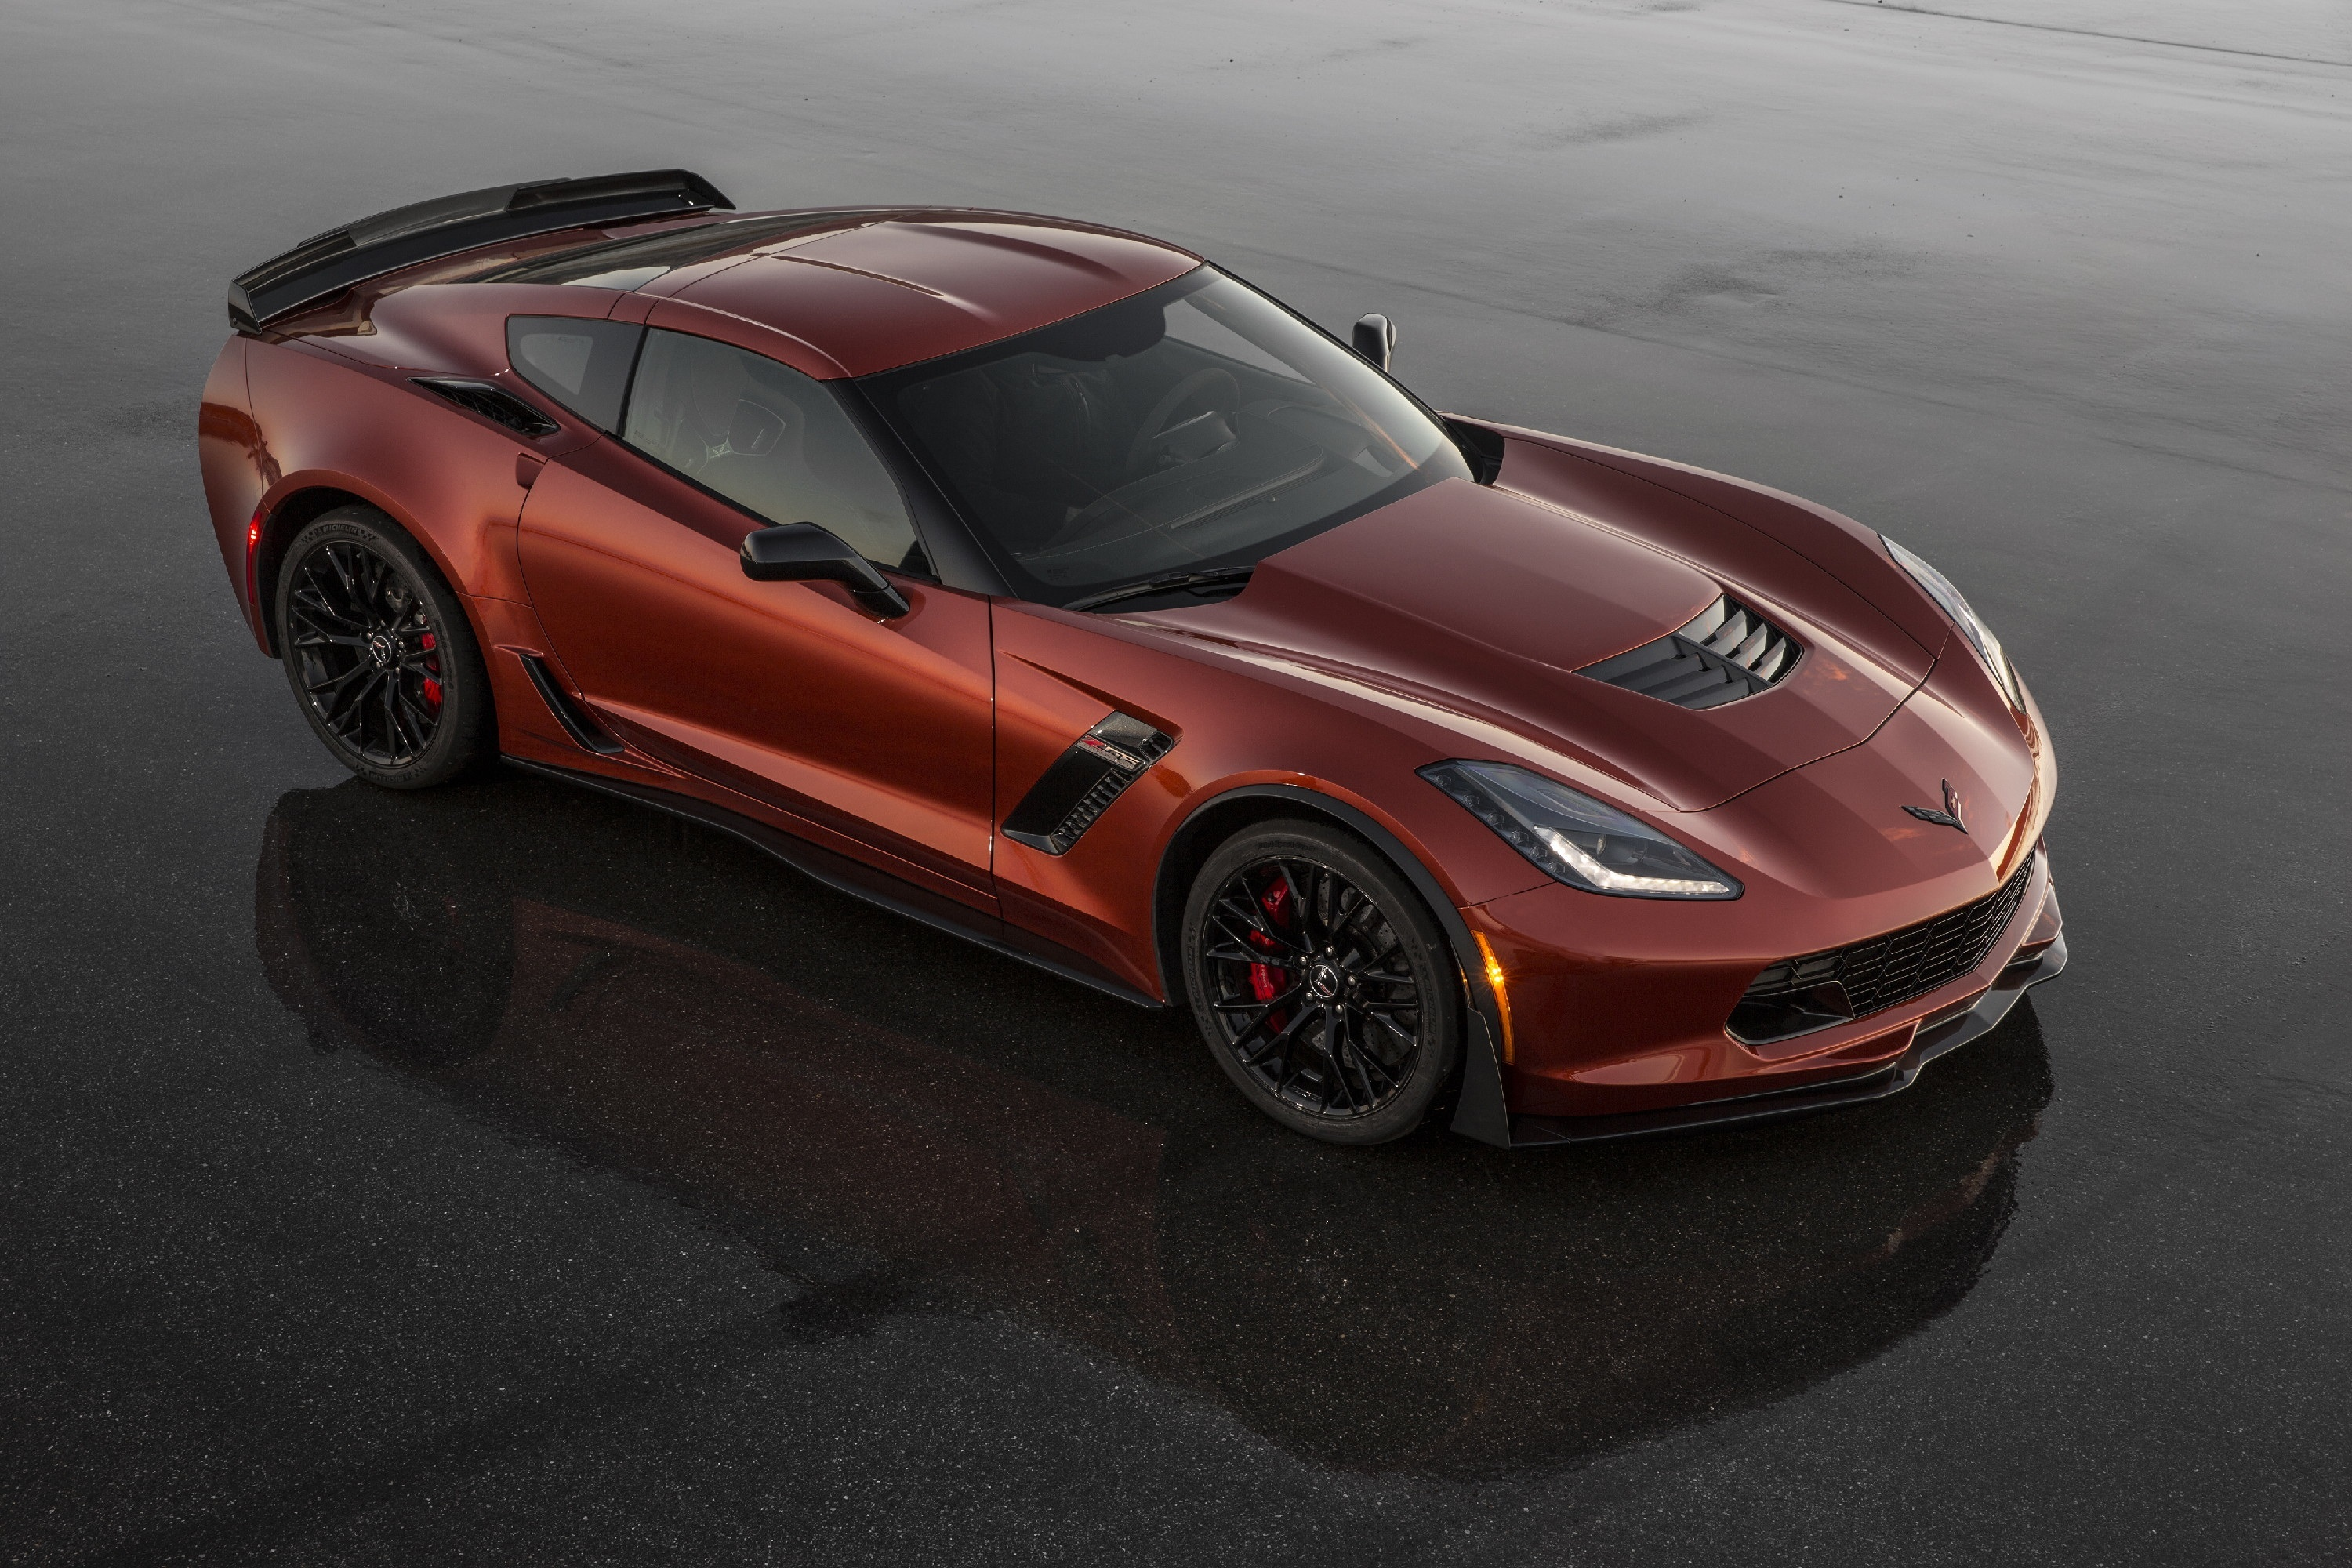 american made corvette z06 stands up to the best supercars on the planet pittsburgh post gazette. Black Bedroom Furniture Sets. Home Design Ideas